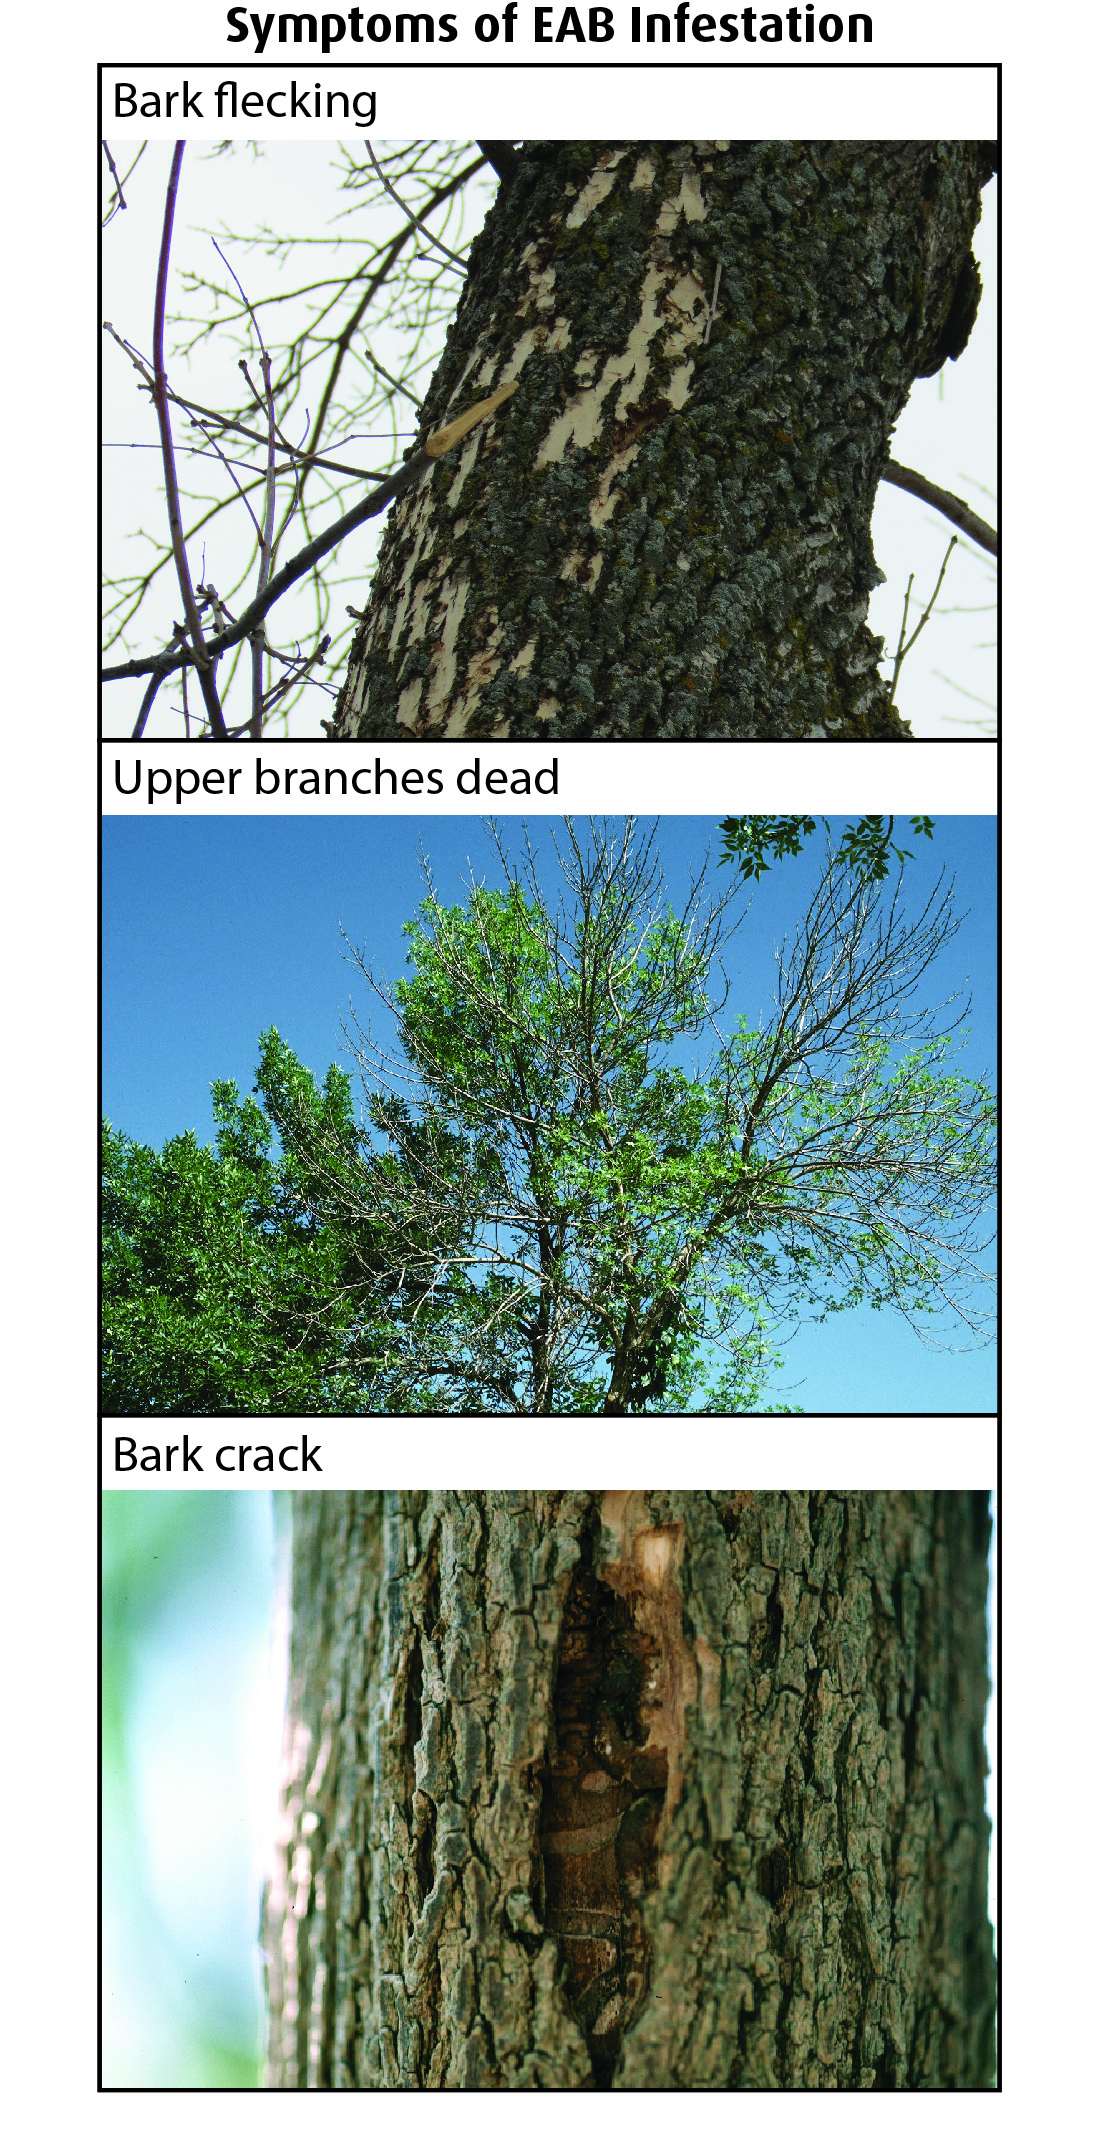 Symptoms of EAB.jpg